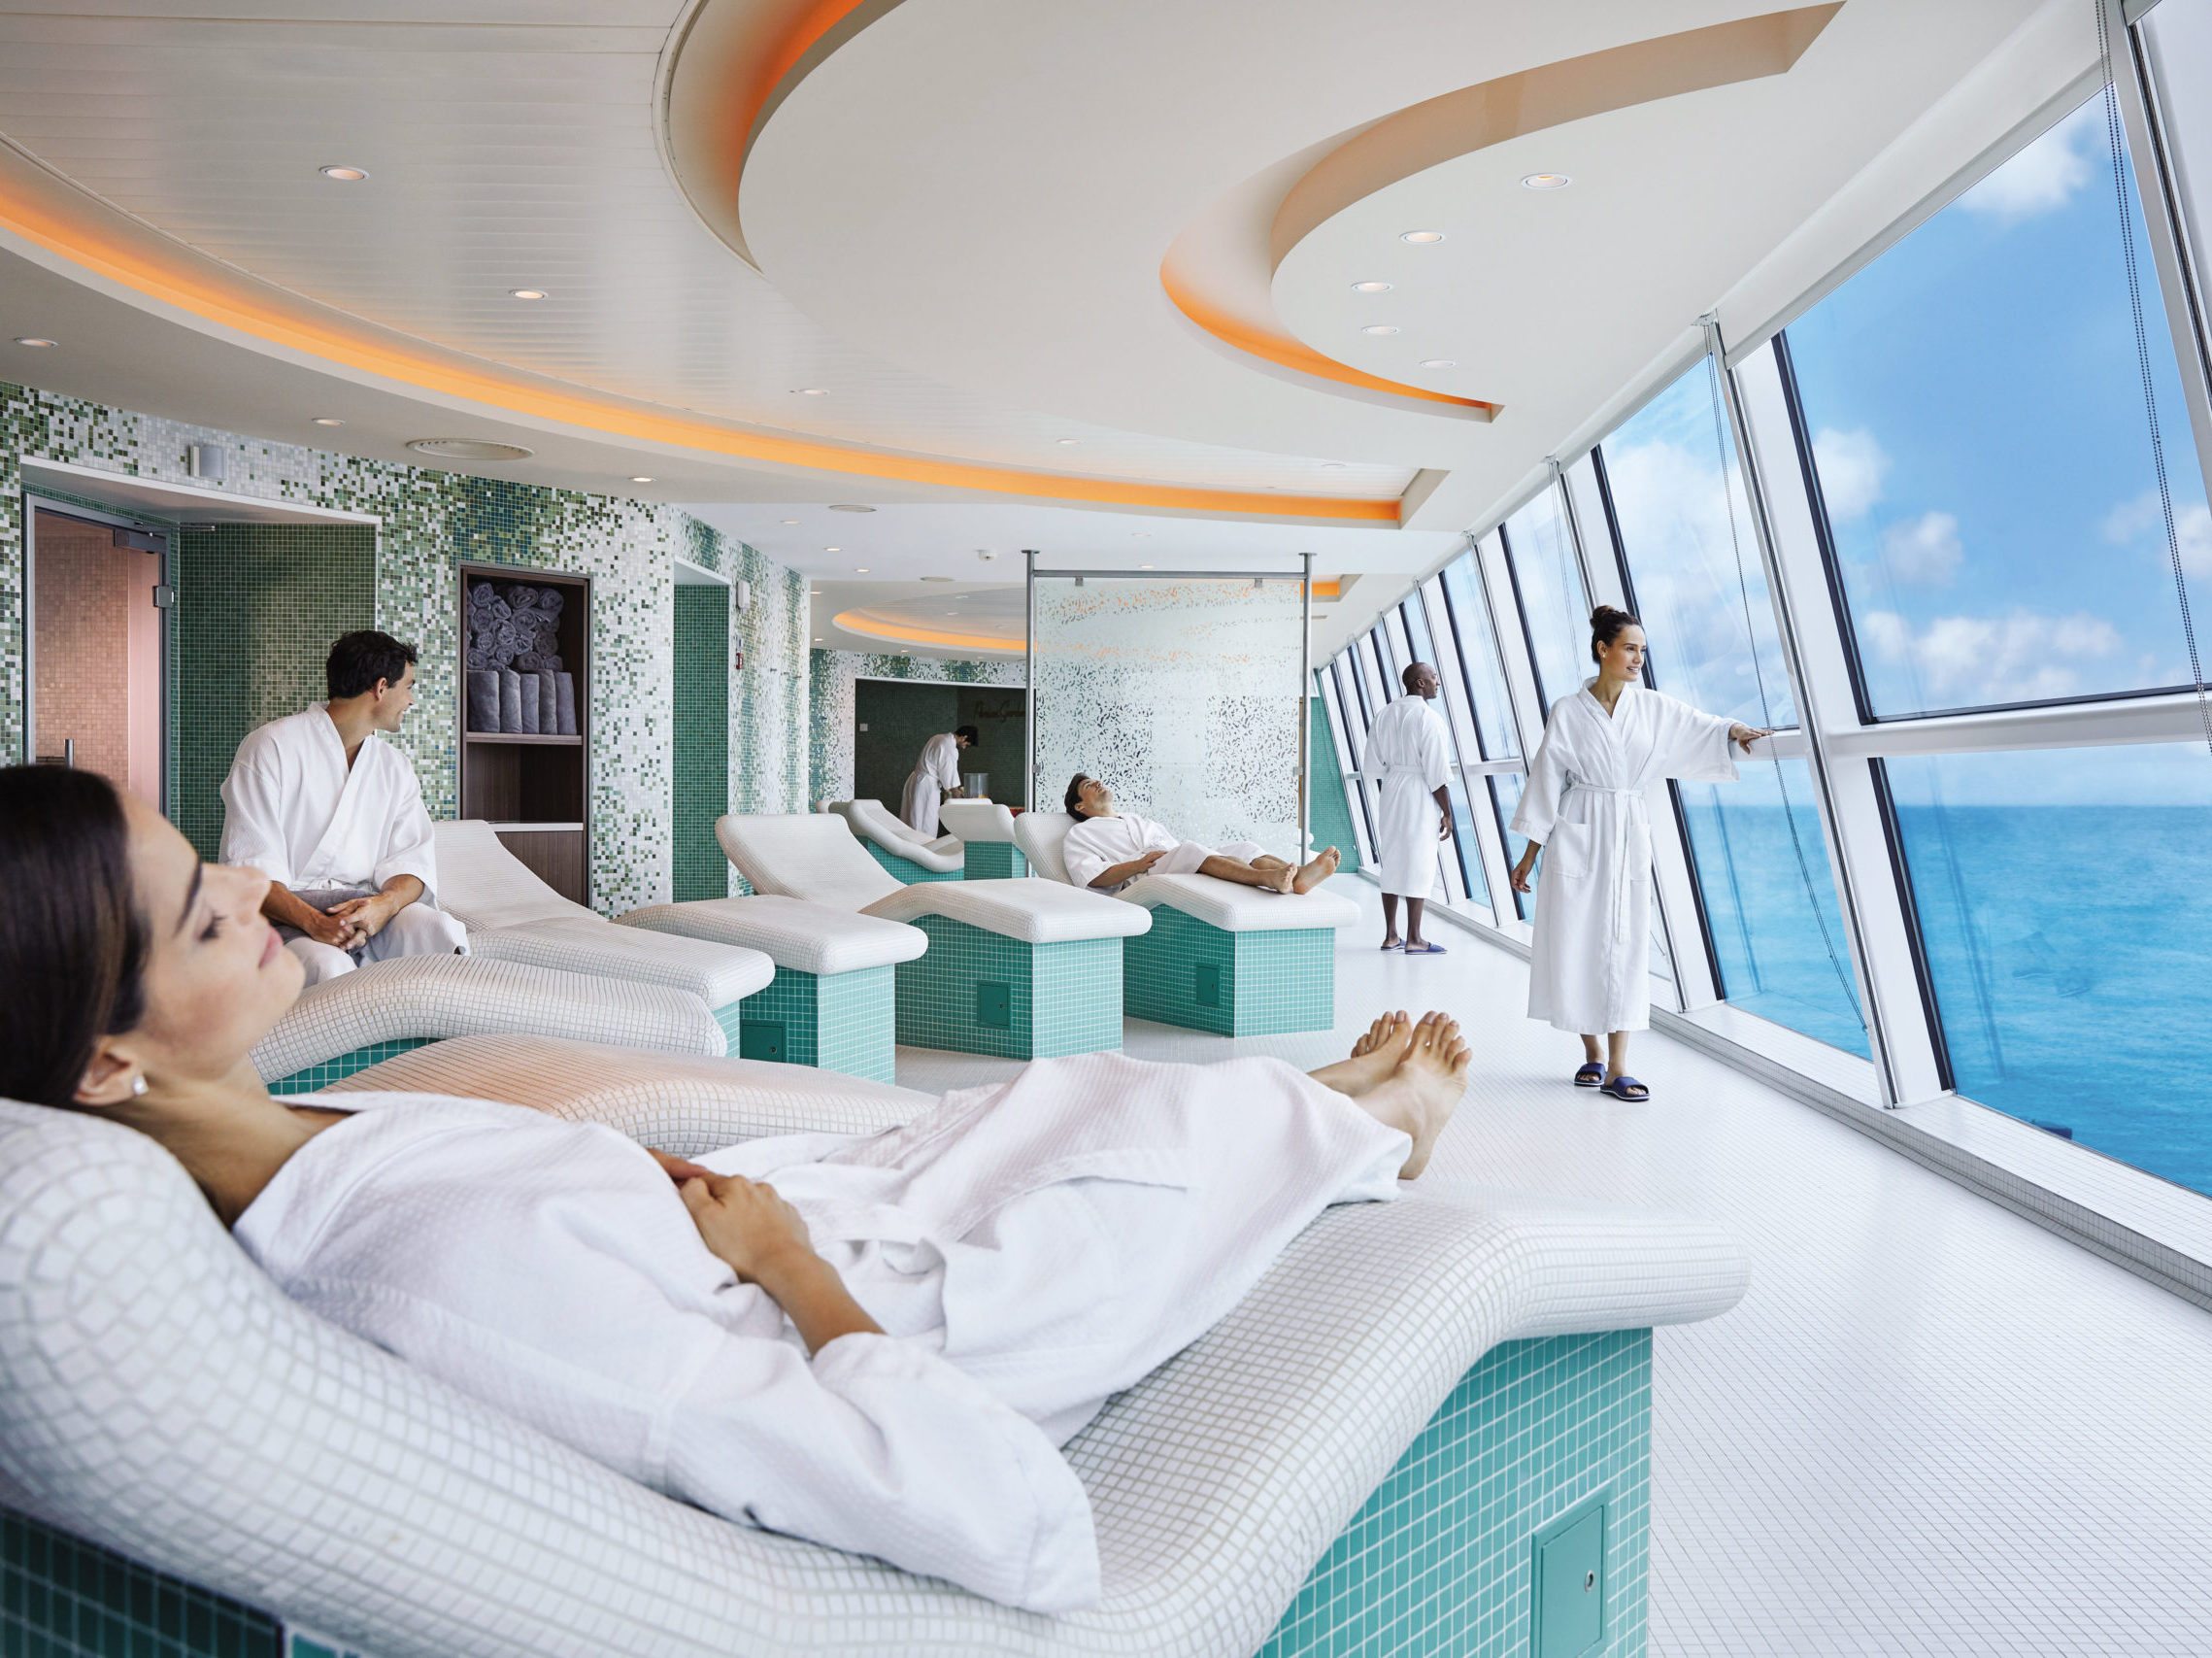 Celebrity Reflection de Spa - relax